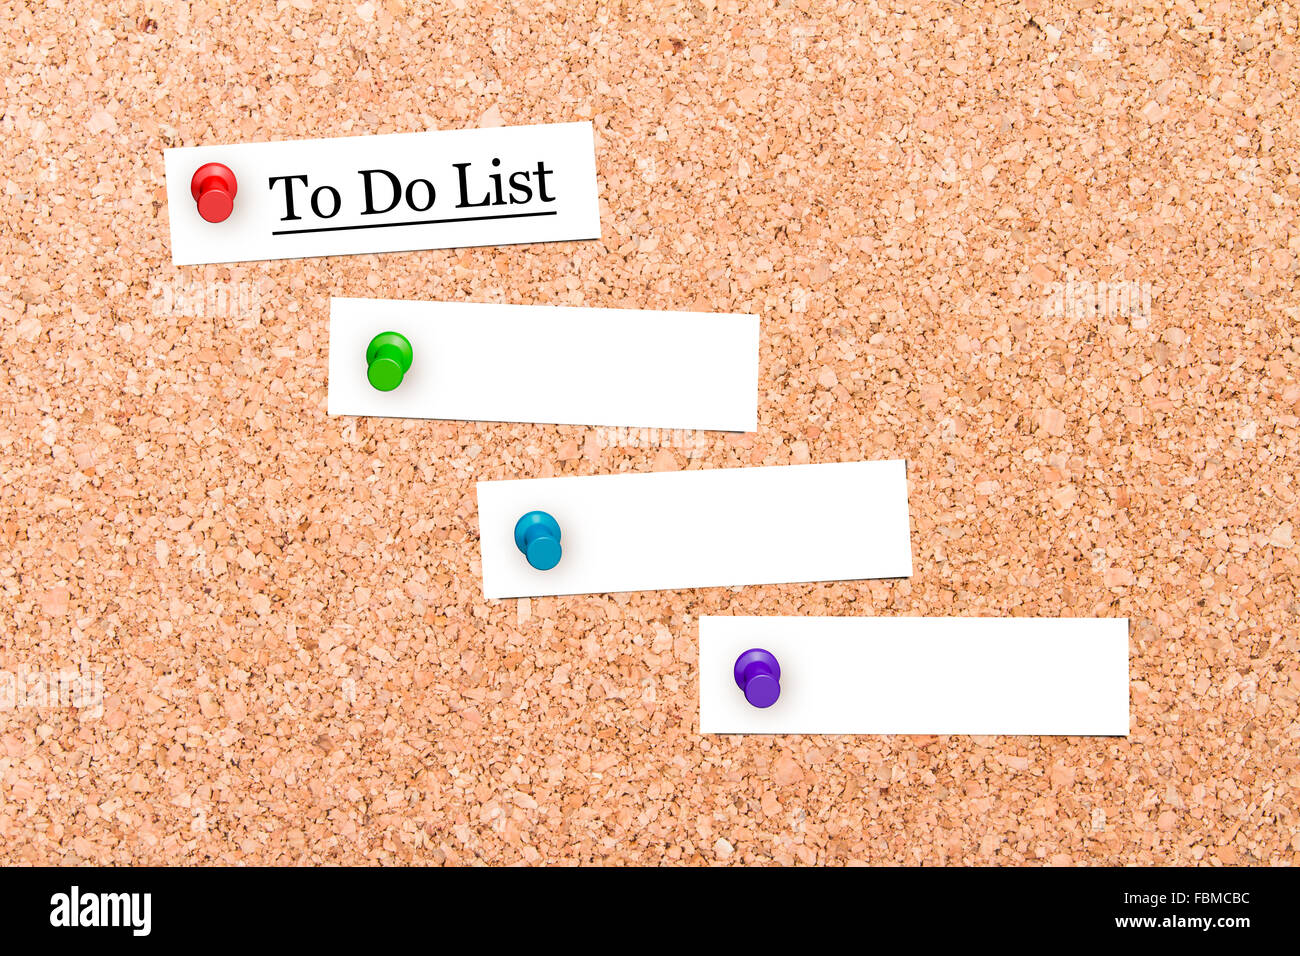 close up front view of illustrative corkboard with to do list text